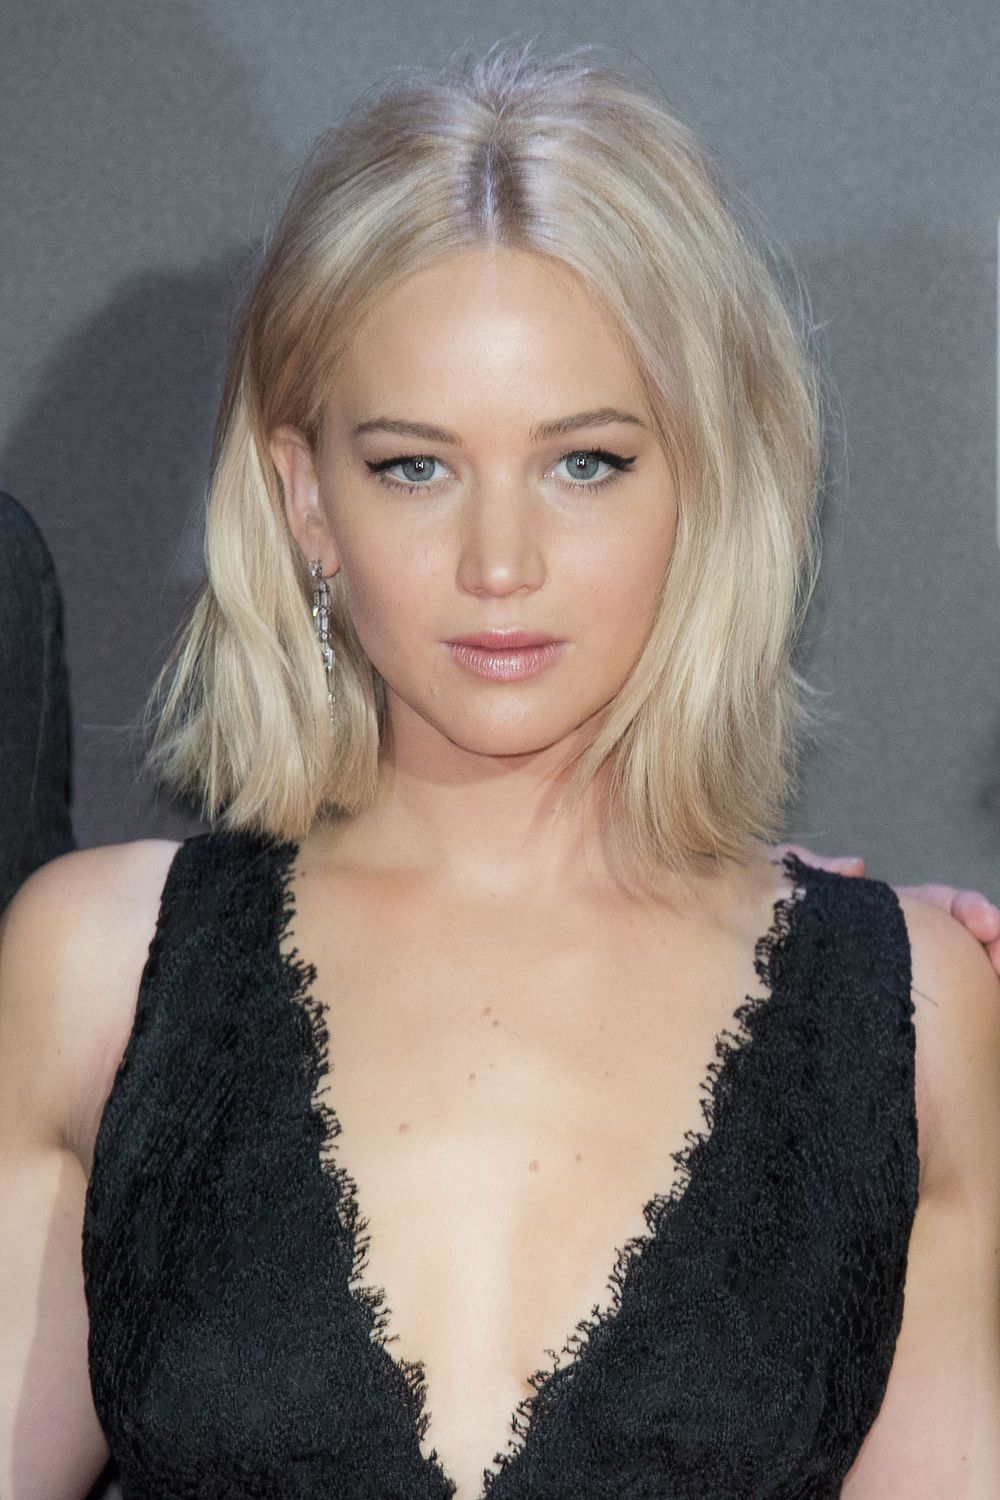 Bob hairstyles: The best celebrity bobs to inspire your hairdo ...